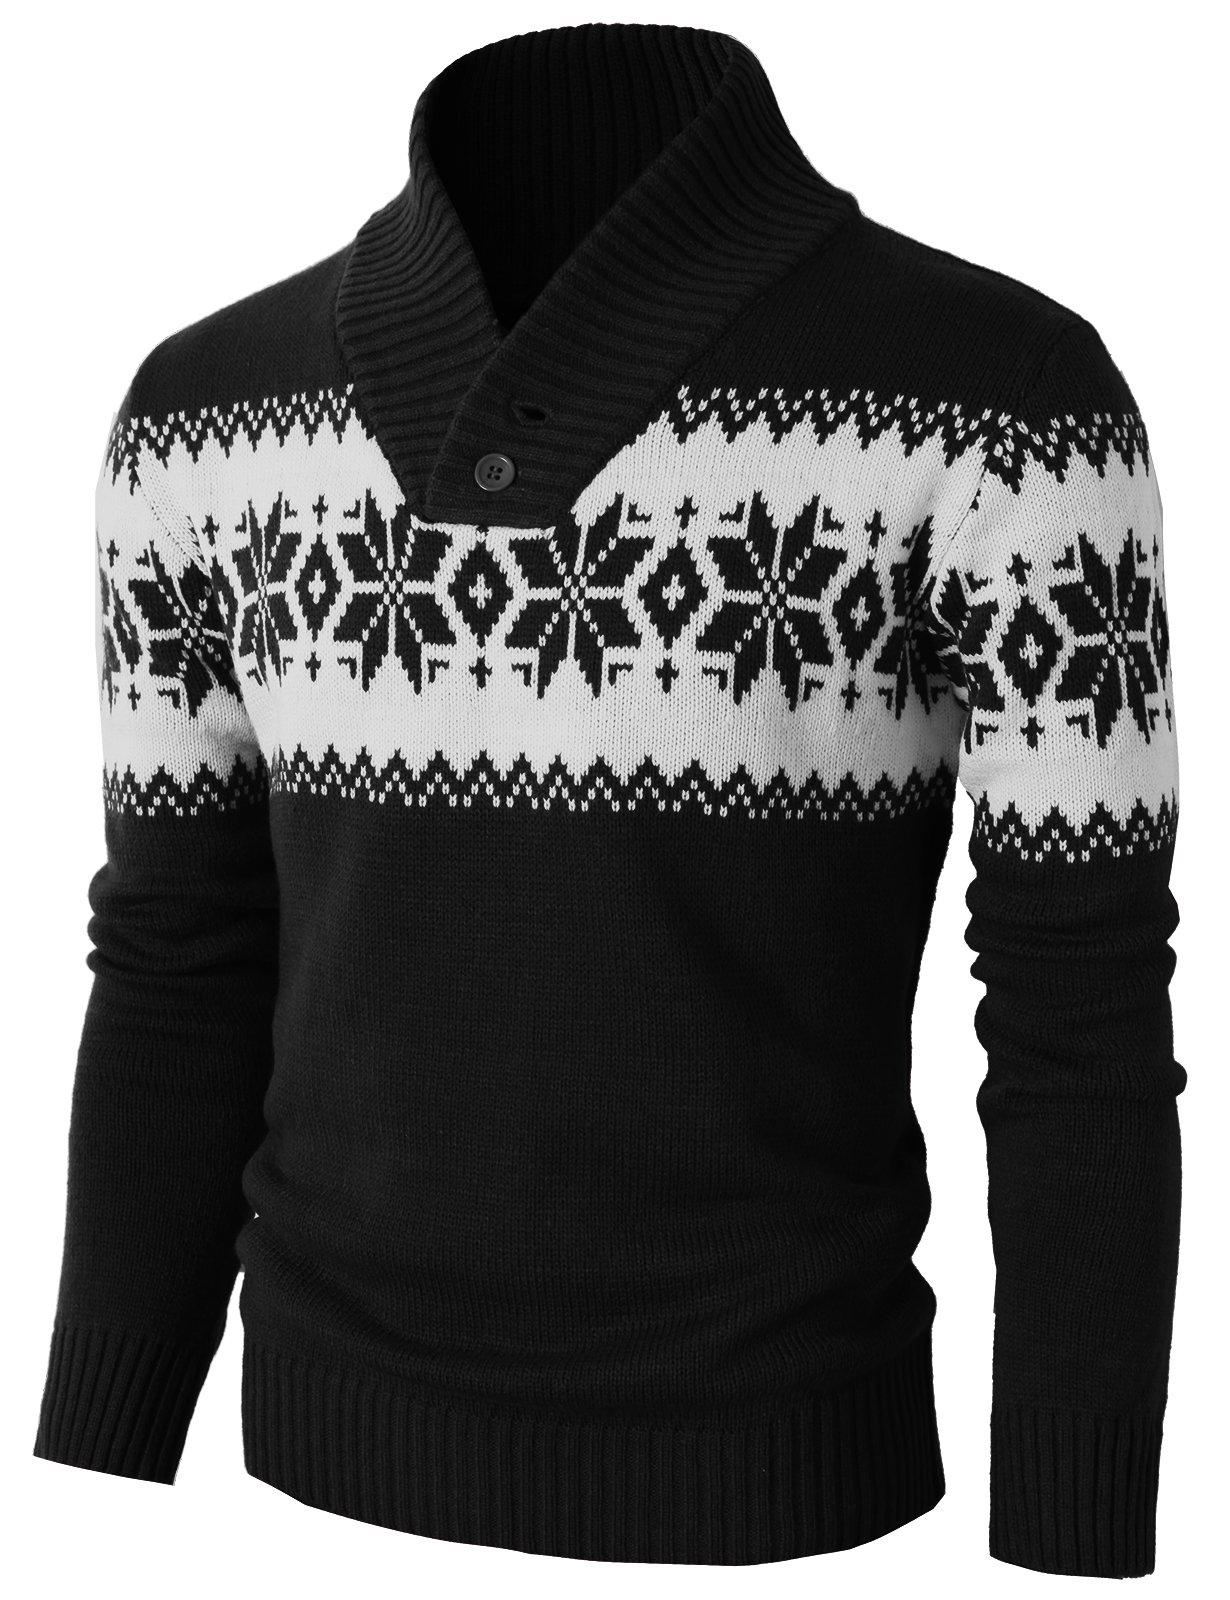 Men's Casual Slim Fit Knitted Pullover Sweaters of Various Christmas Pattern 4